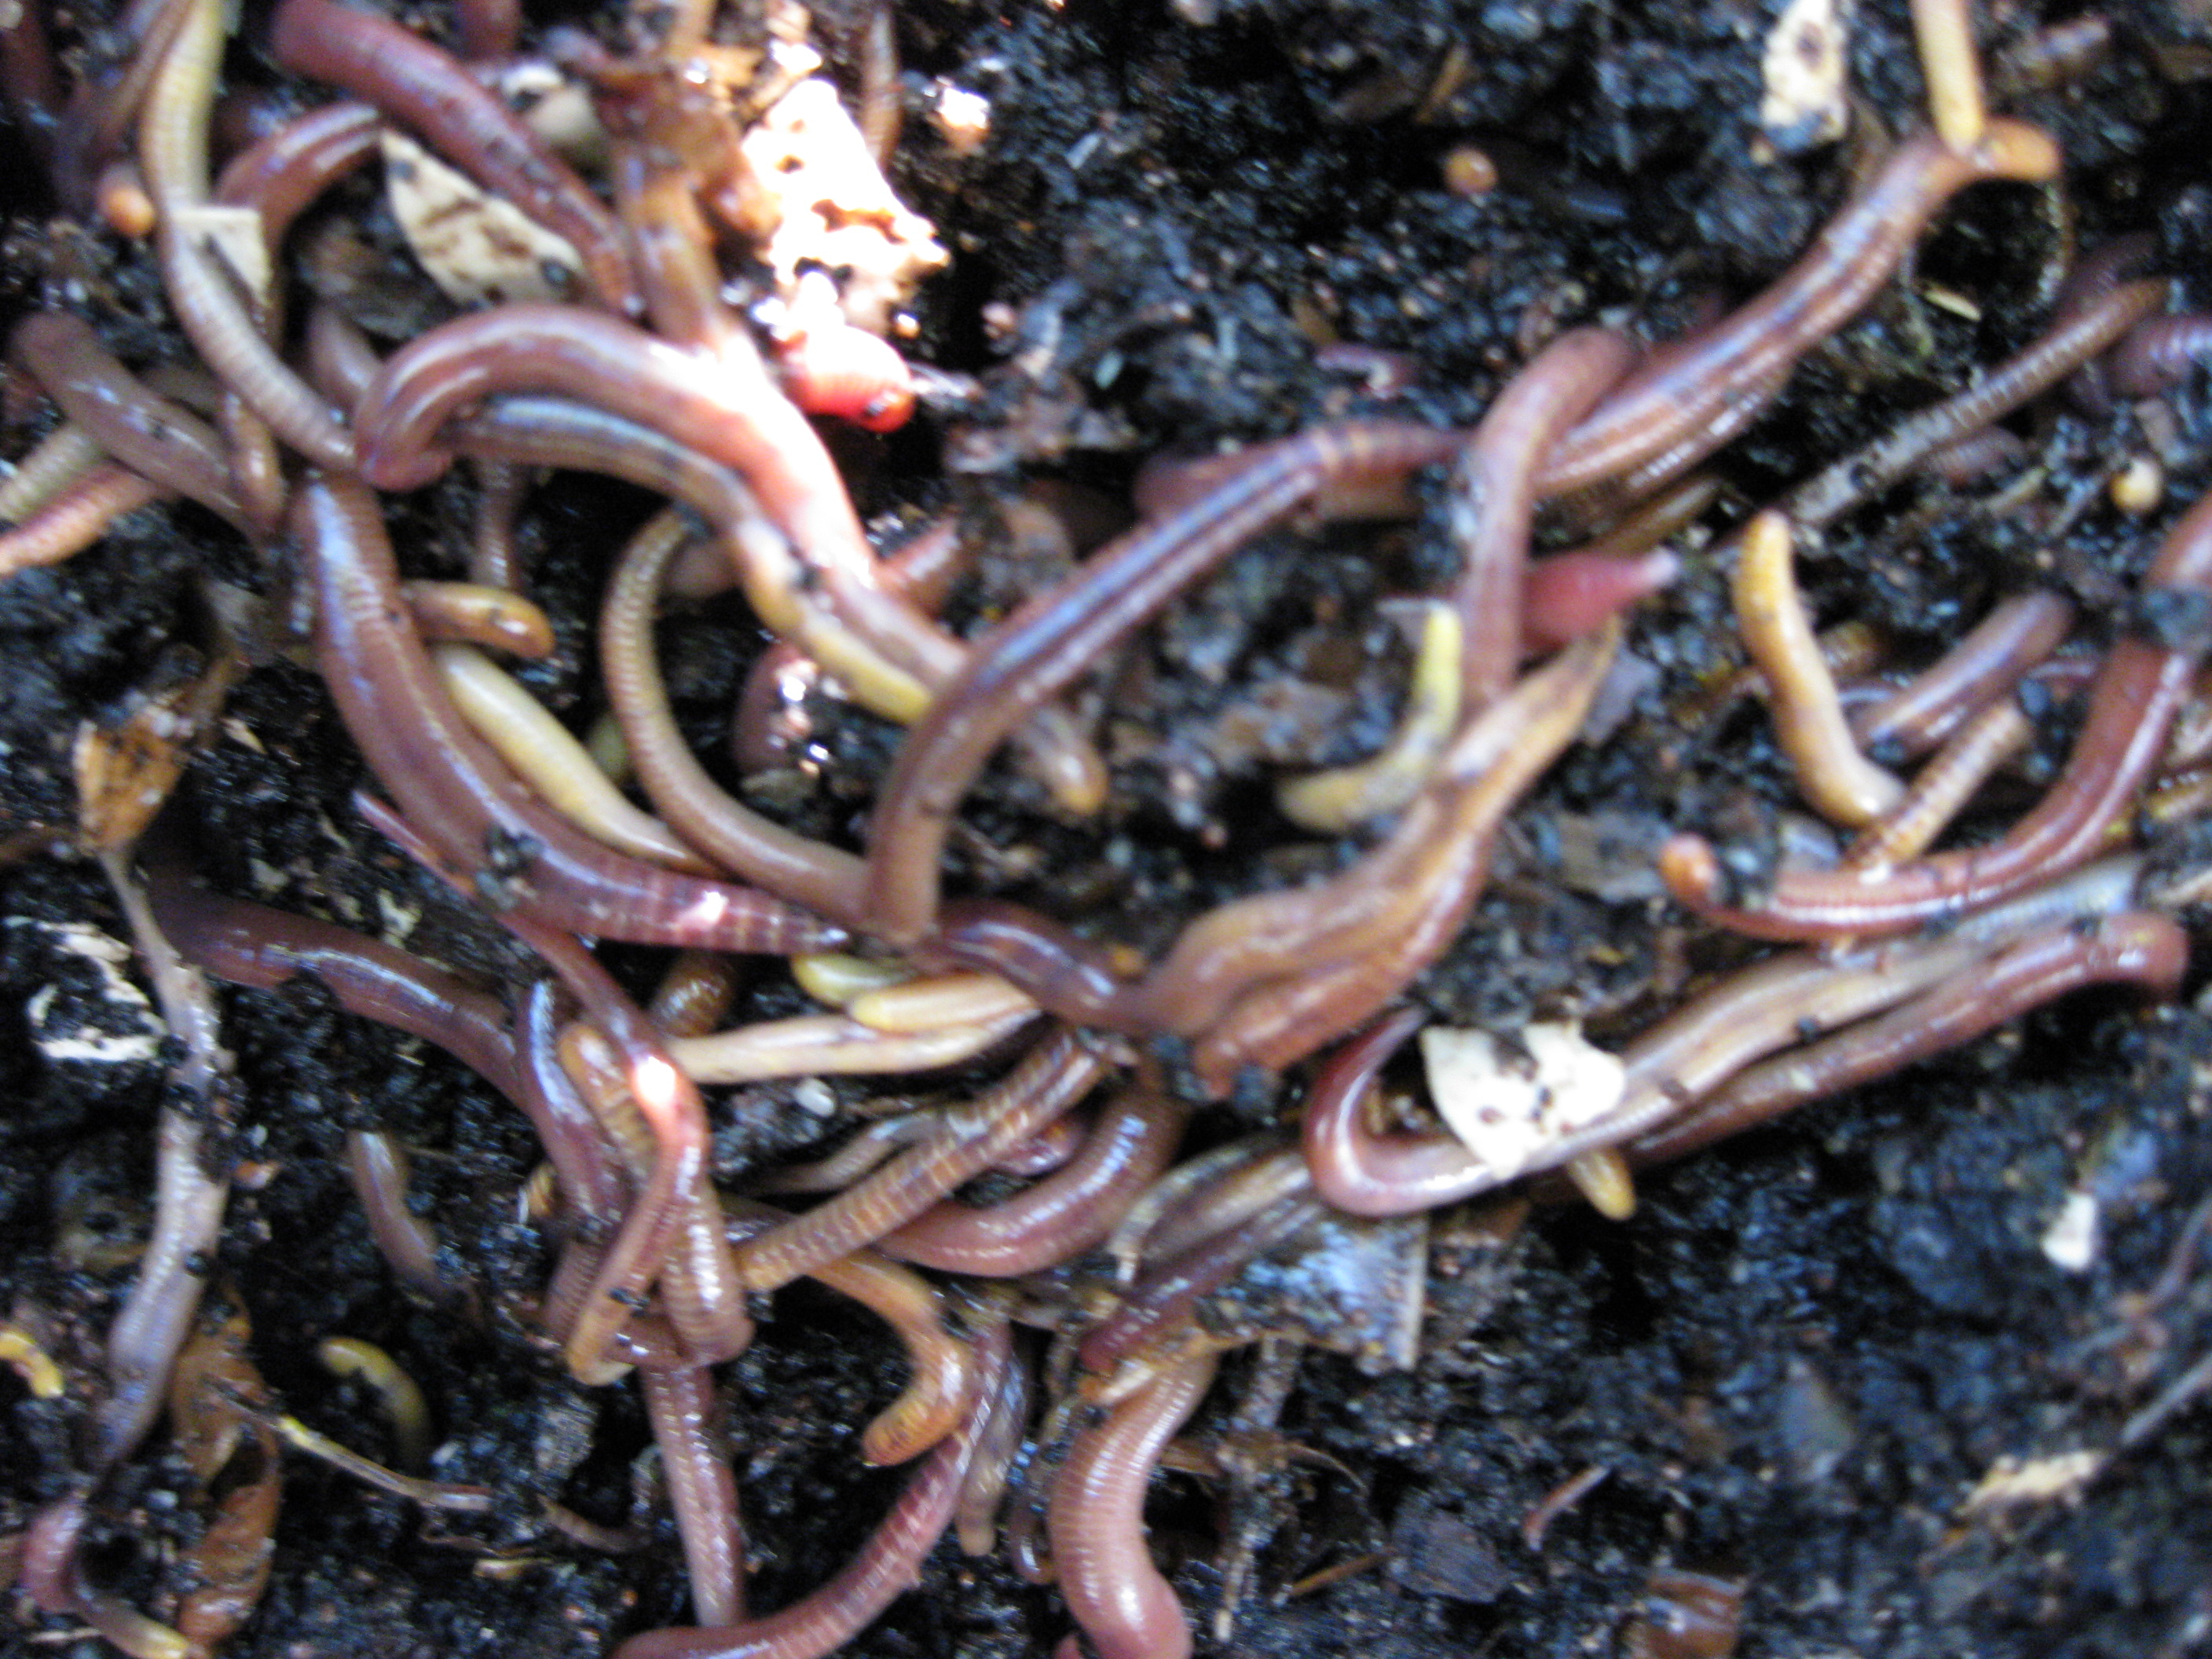 Compost worms in action.